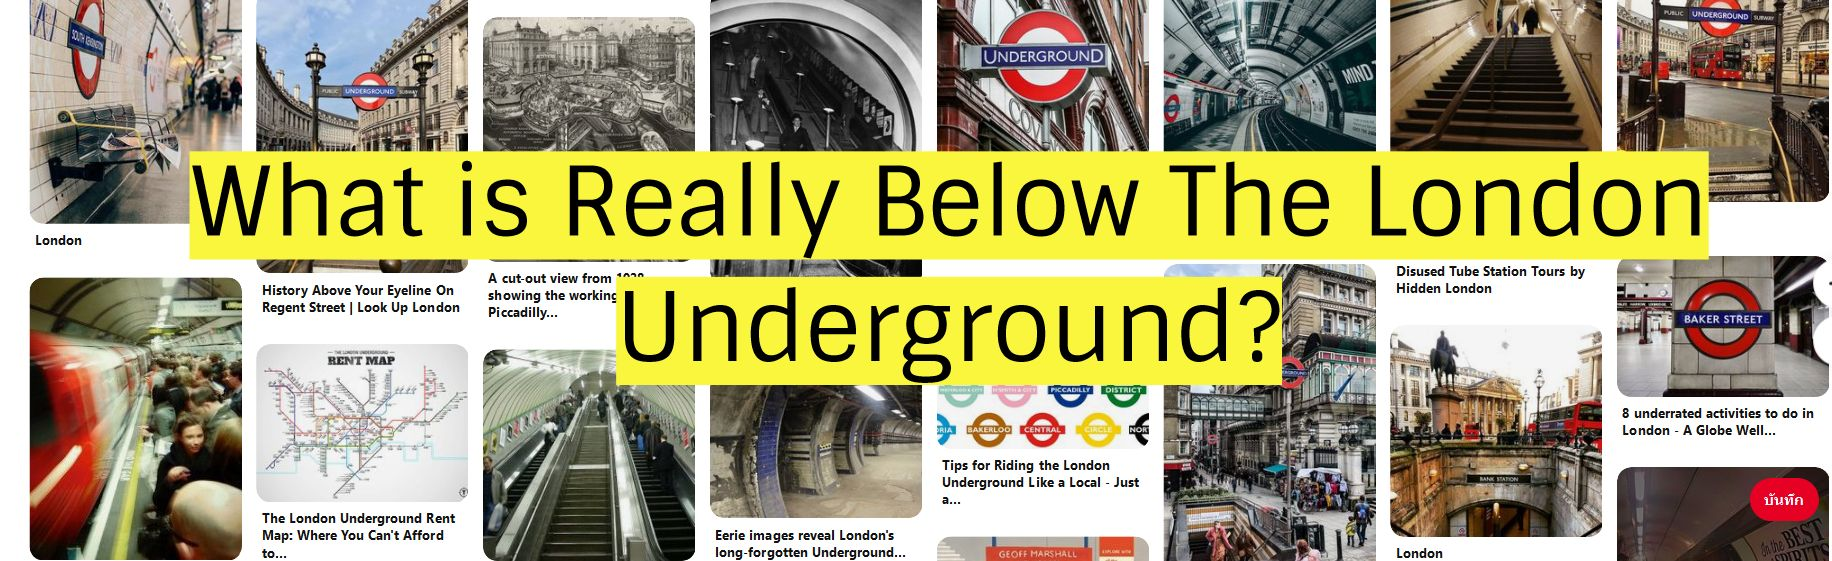 What is Really Below The London Underground?